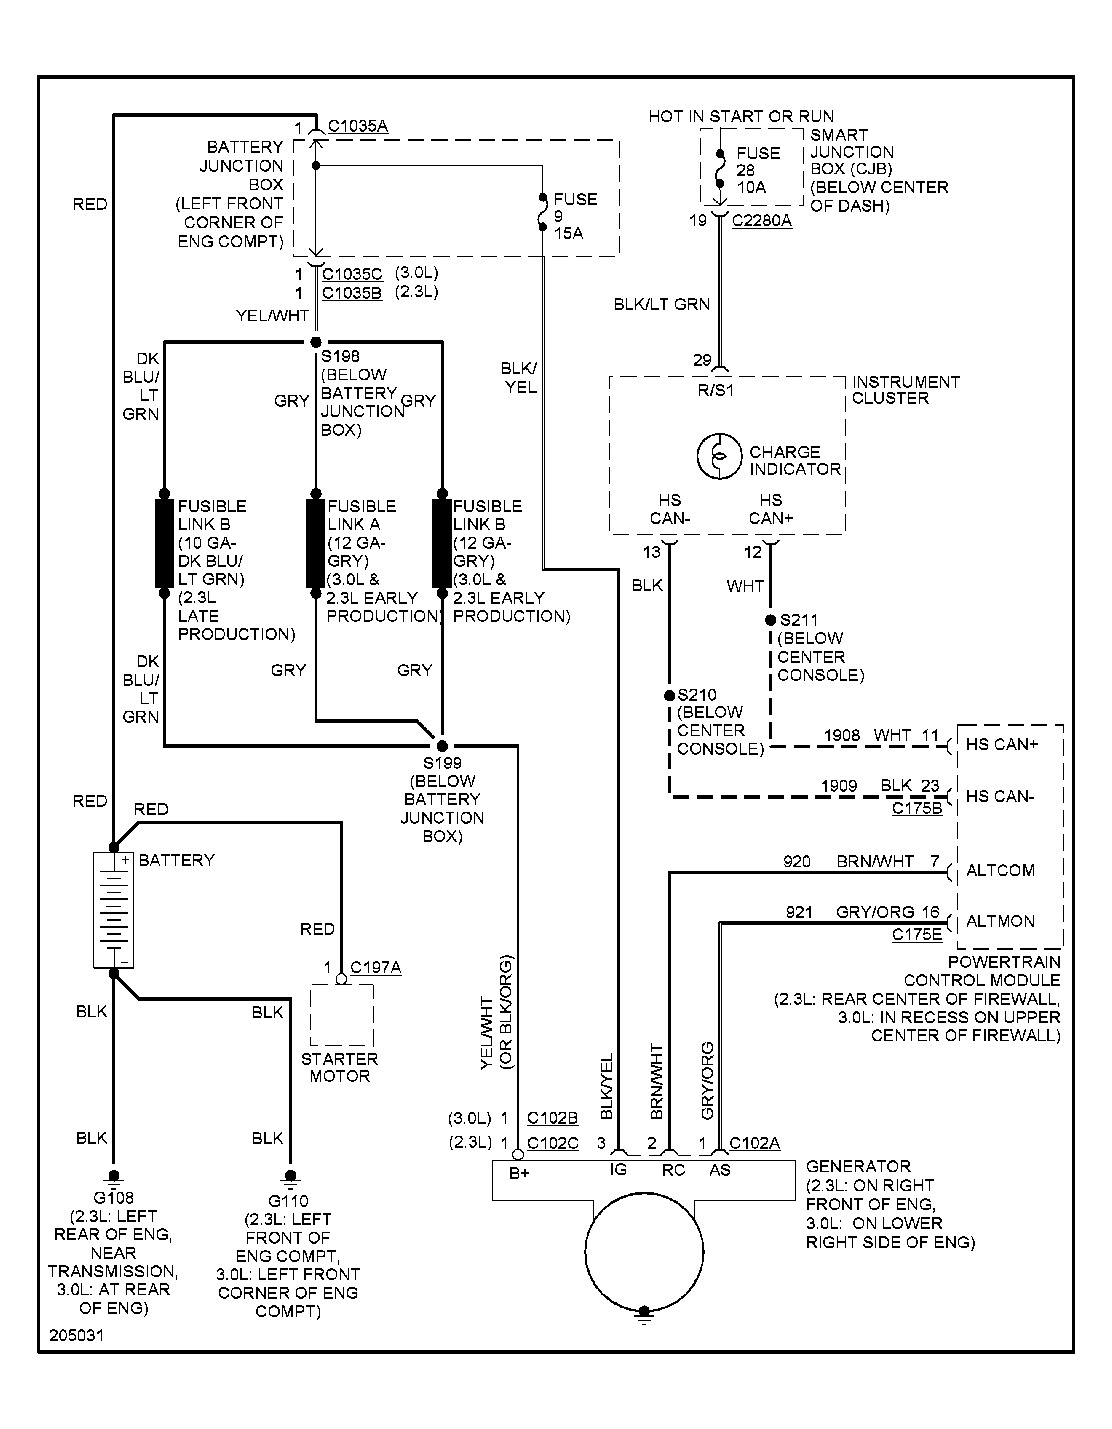 2005 Ford Escape Charging System Problem: a Few Weeks Ago